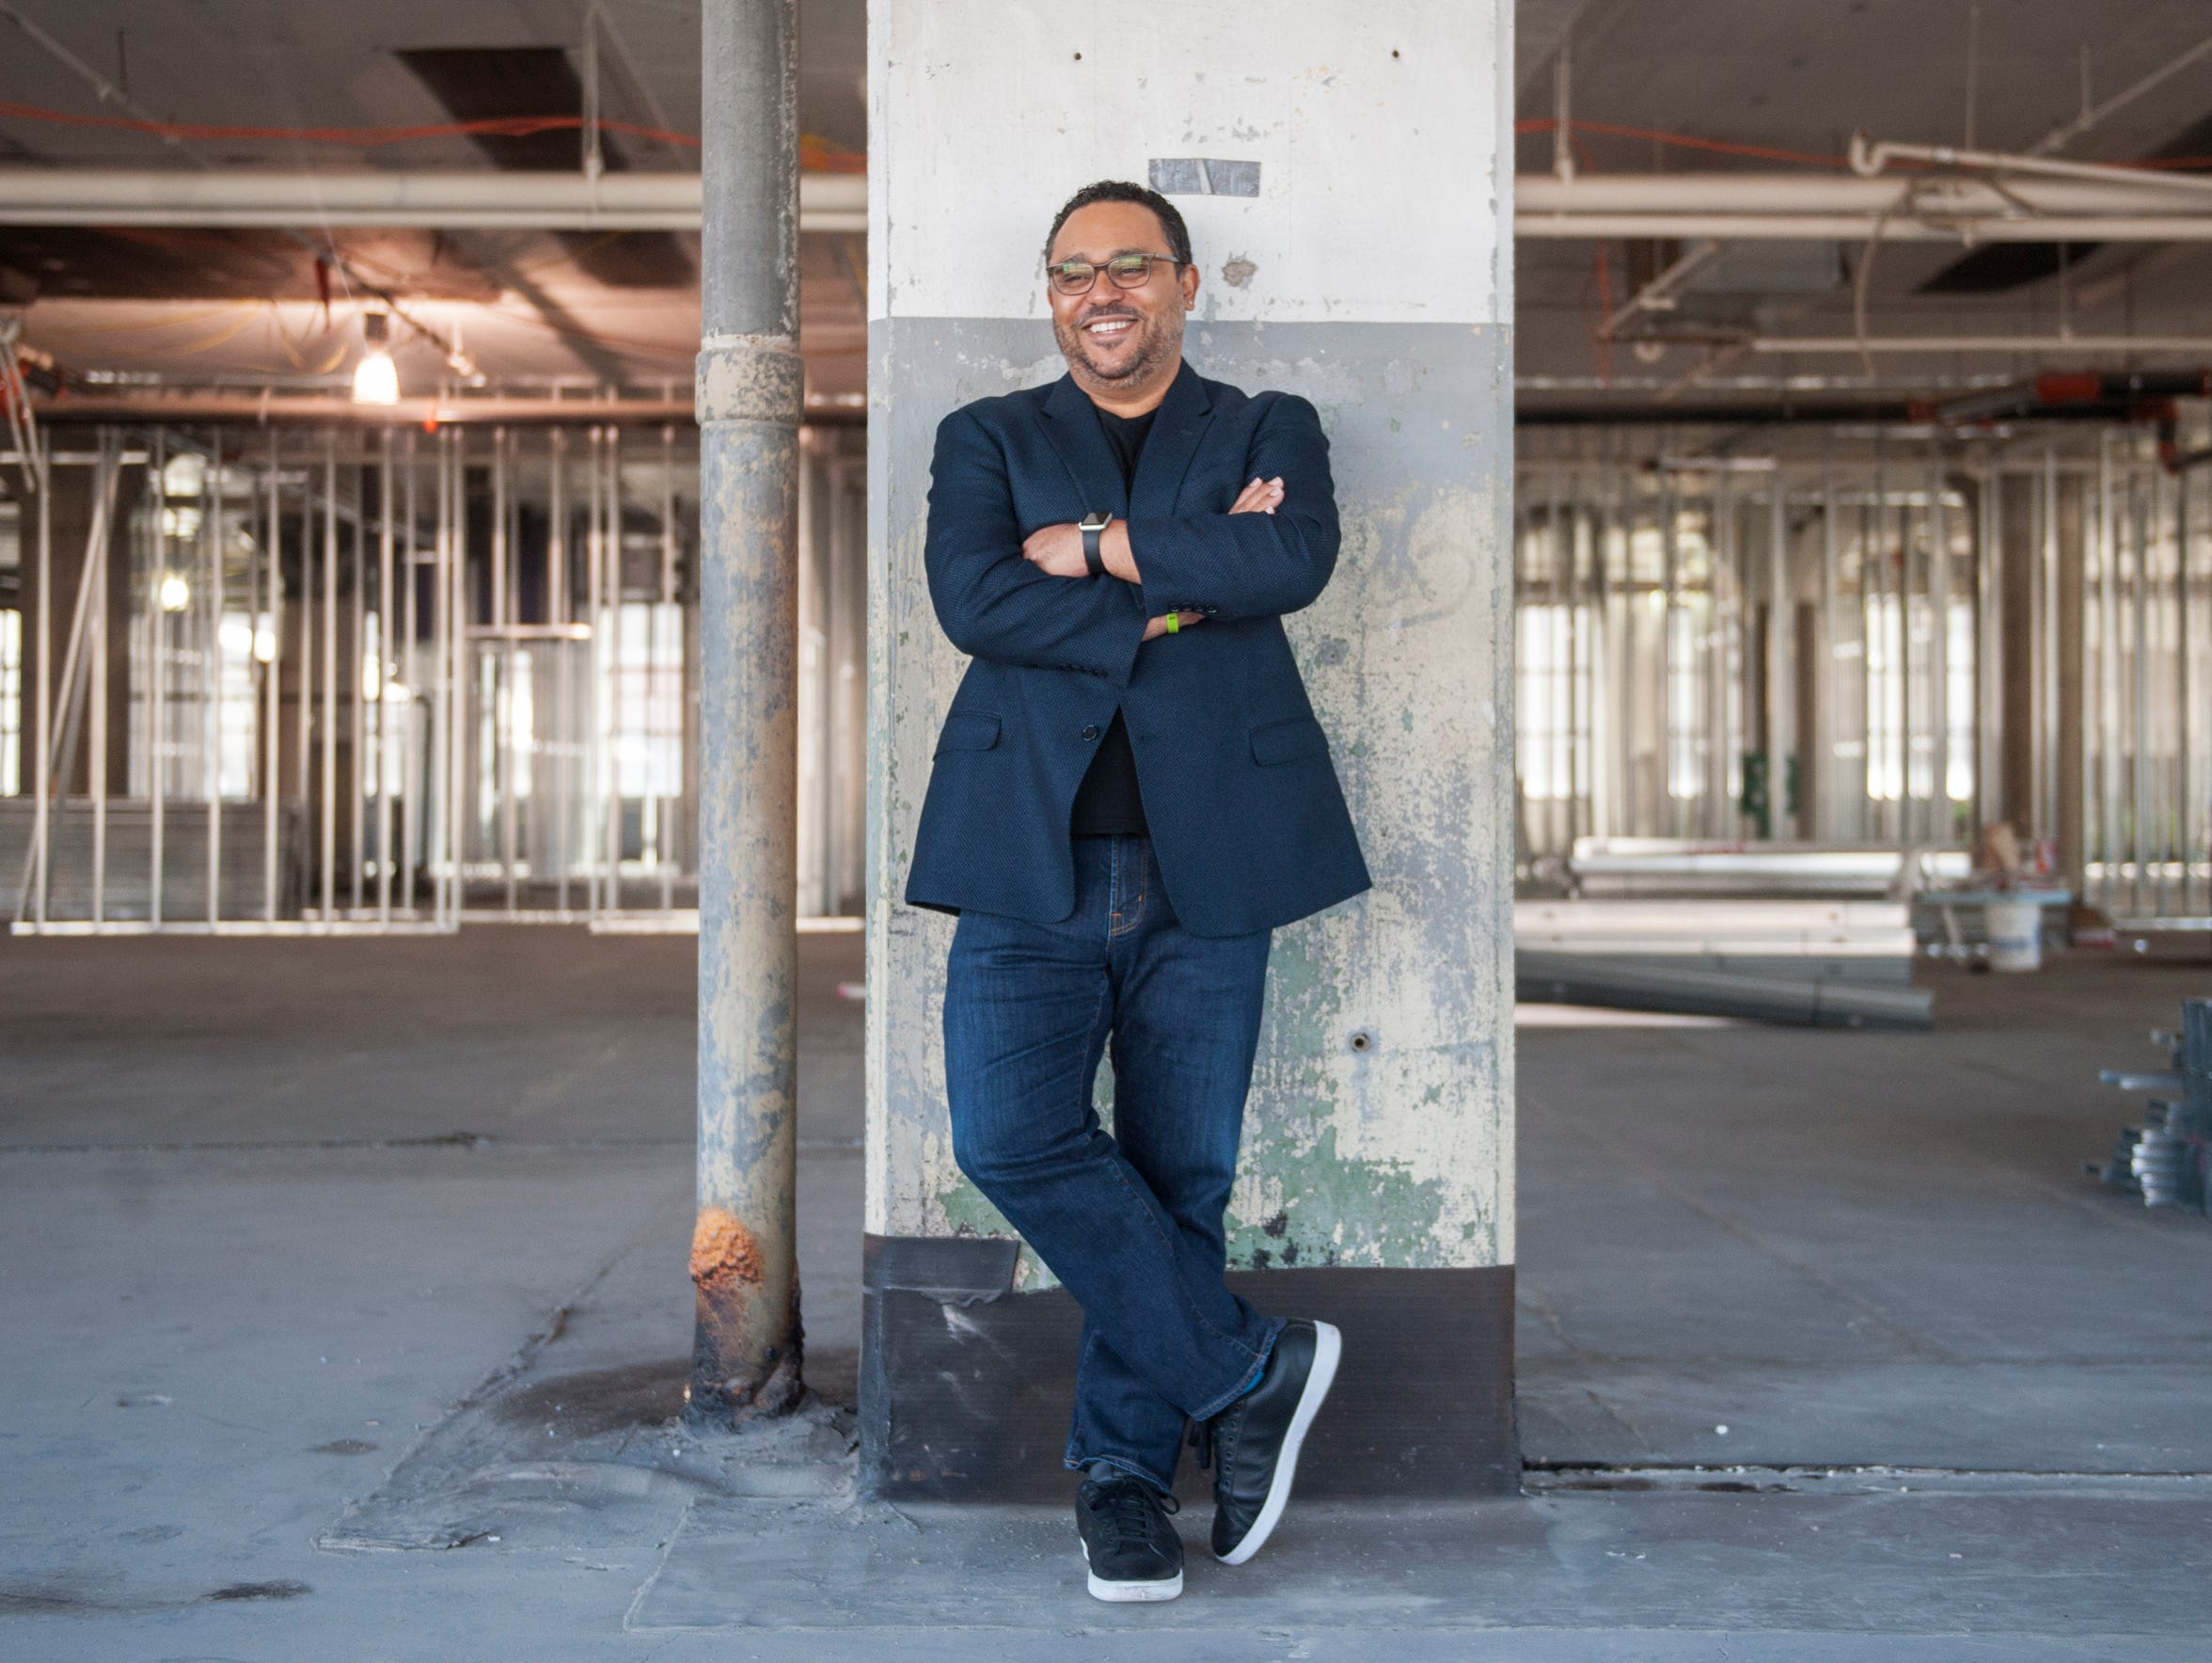 Kevin Sbraga, shown here in the Fitler Club space which is under construction, says he is learning to slow down and appreciate life after suffering some career setbacks. ' I'm just trying to enjoy everything that's going on. We so often forget to do that. We get so caught up in whatever is happening, that we forget to enjoy that.